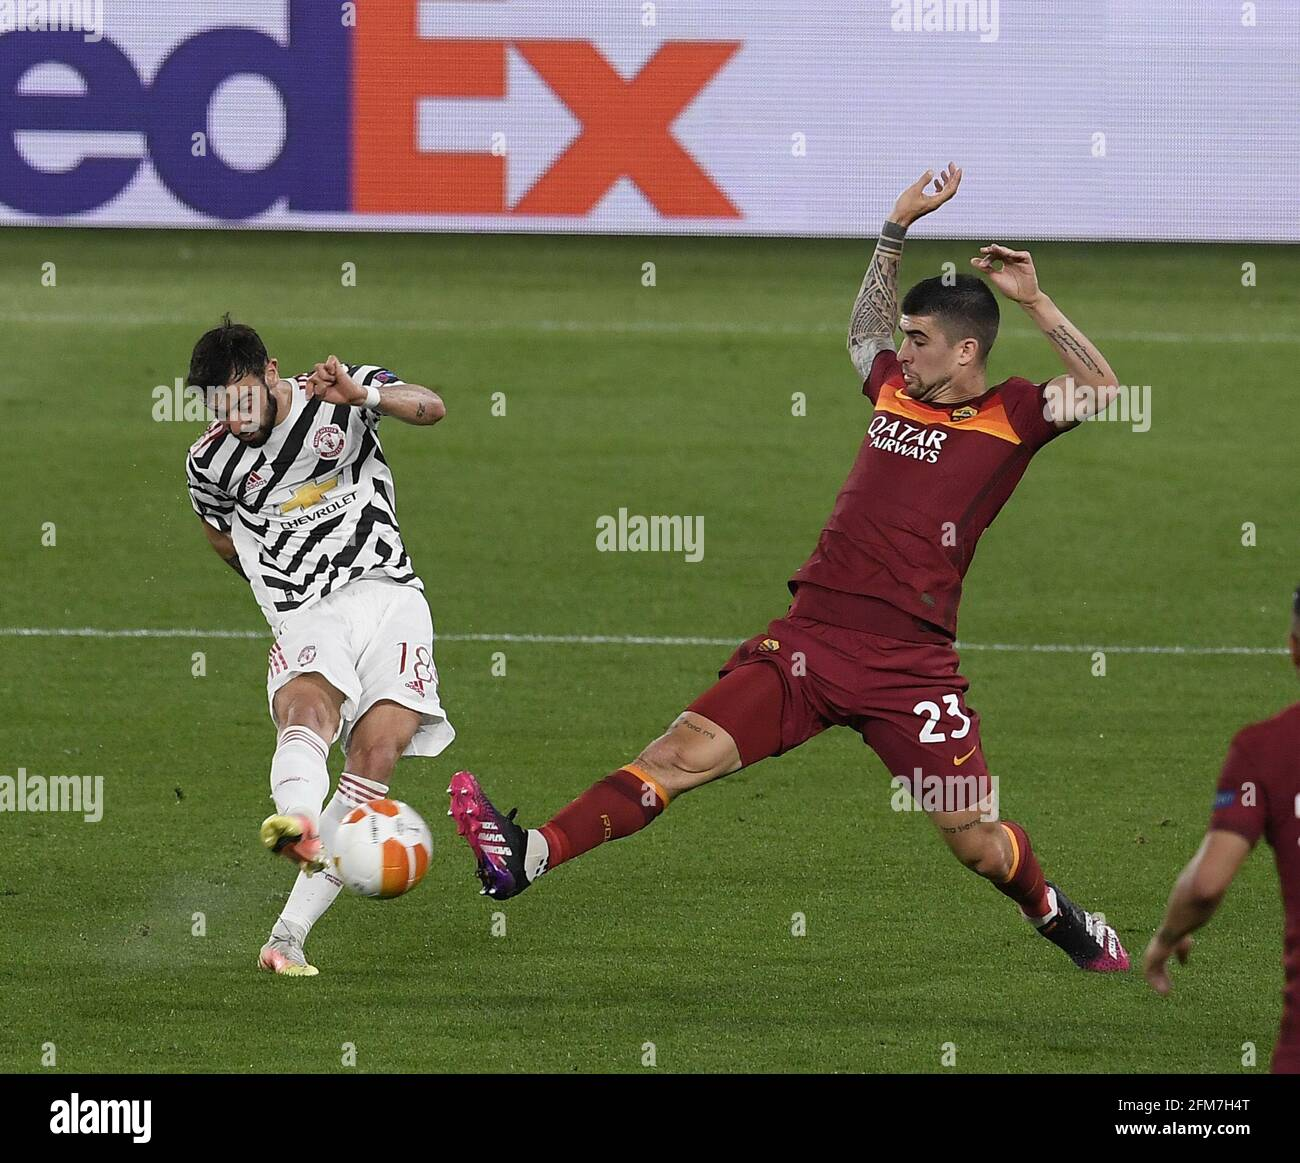 Rome, Italy. 6th May, 2021. Manchester United's Bruno Fernandes (L) vies with Roma's Gianluca Mancini during the UEFA Europa League semifinal second leg football match between Roma and Manchester United in Rome, Italy, May 6, 2021. Credit: Augusto Casasoli/Xinhua/Alamy Live News Stock Photo